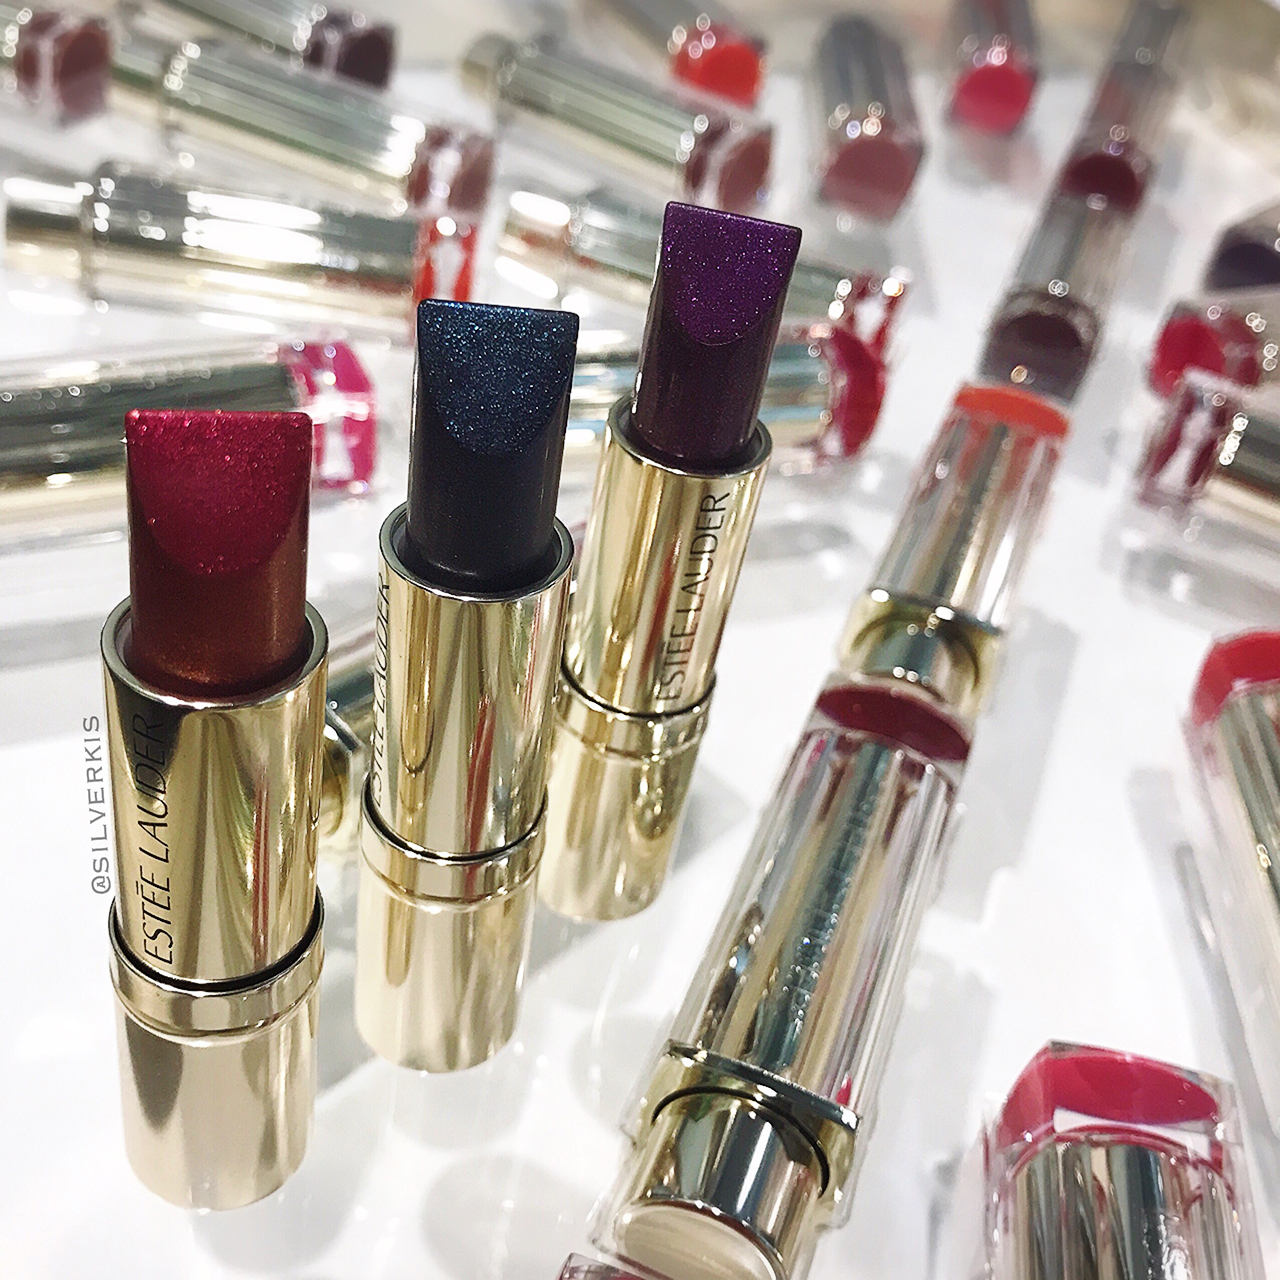 Estée Lauder Pure Color Love Lipsticks - Cooled Chromes